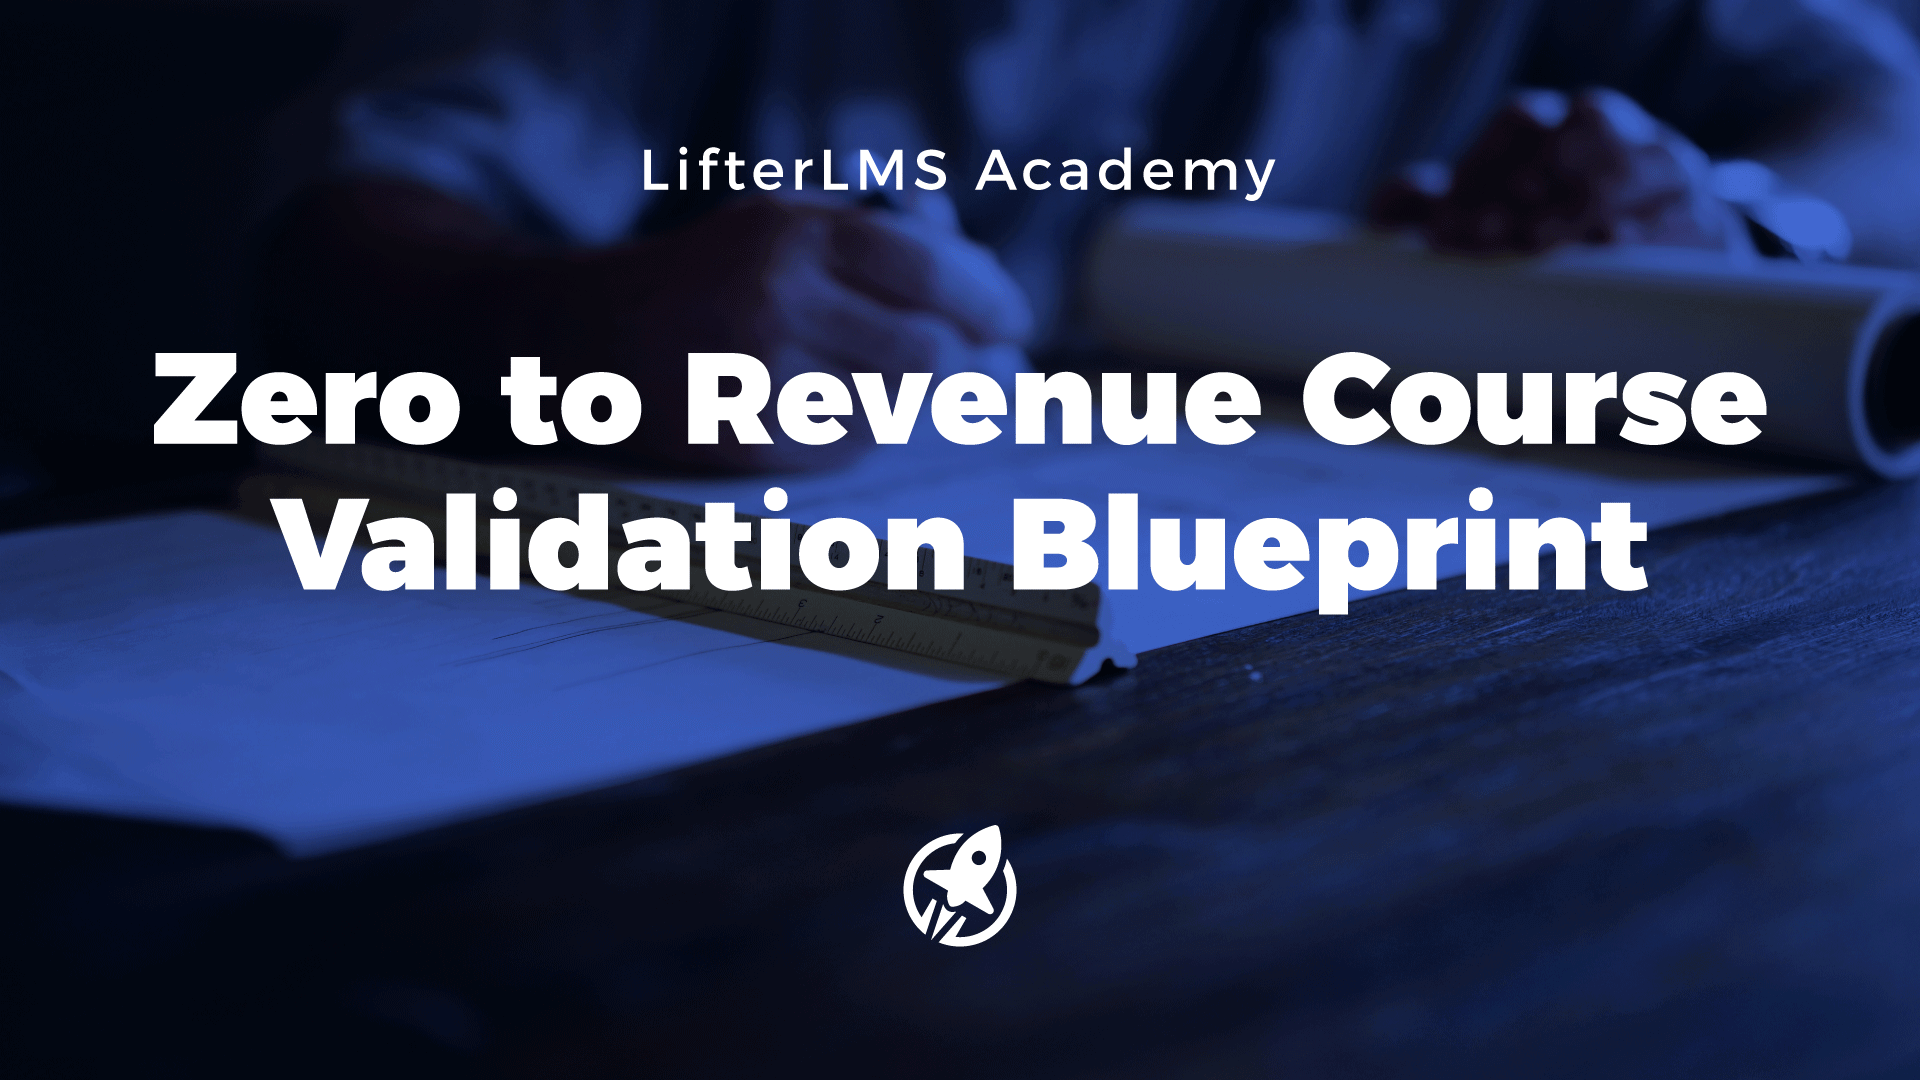 Zero to Revenue Course Validation Blueprint